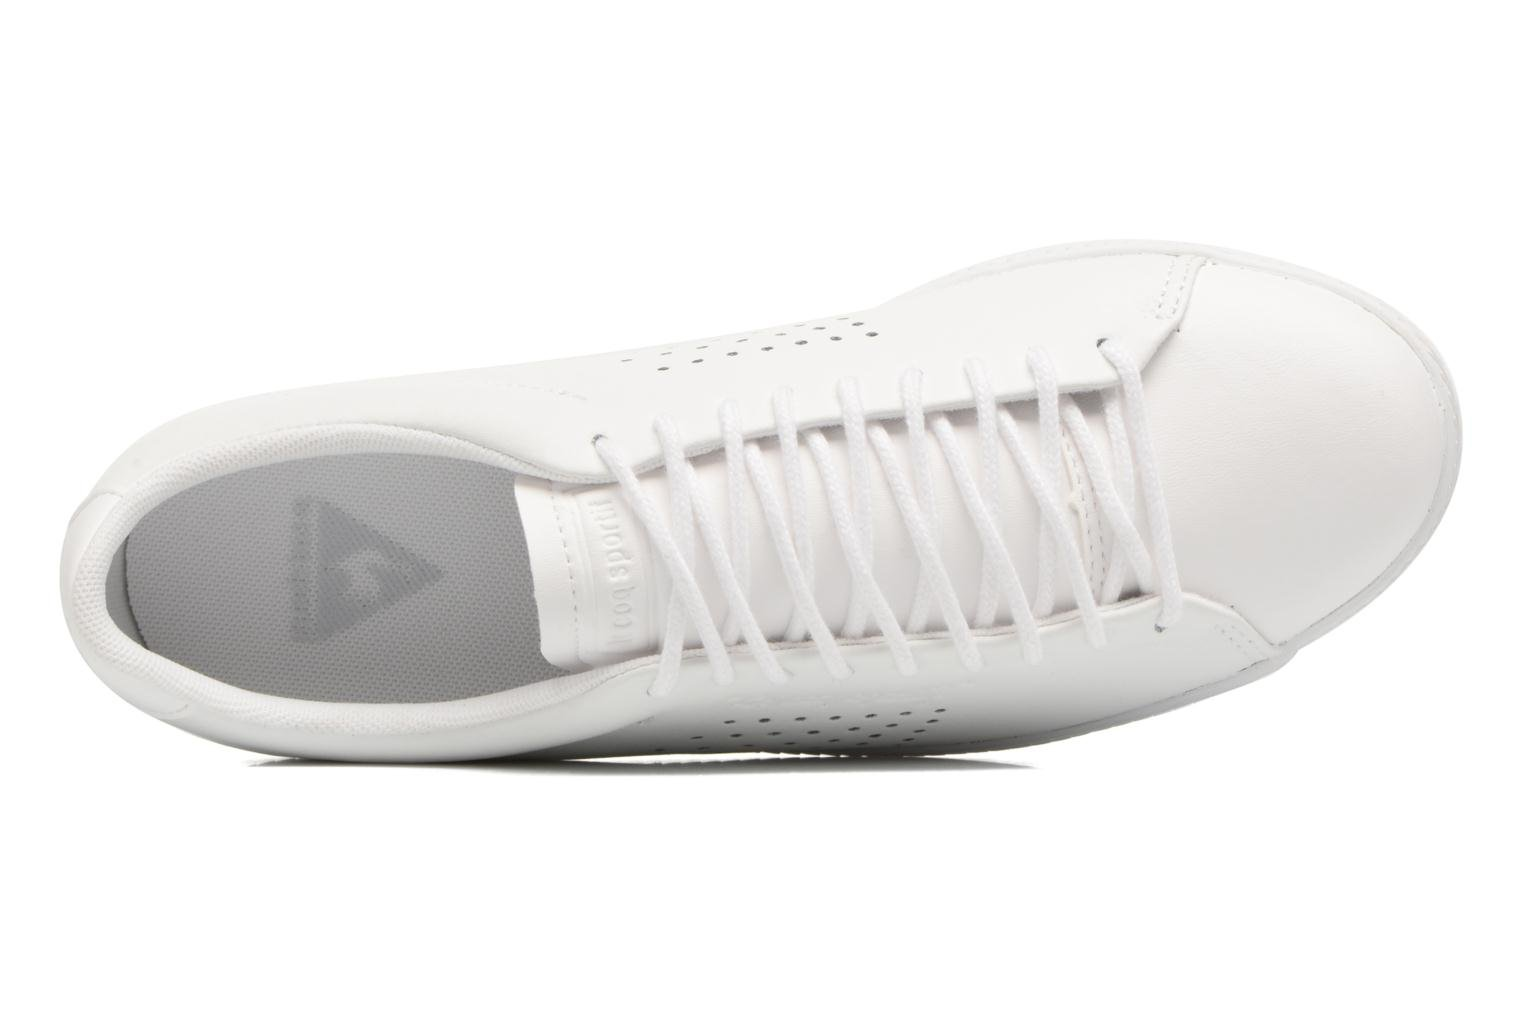 Deportivas Le Coq Sportif Charline Leather Blanco vista lateral izquierda